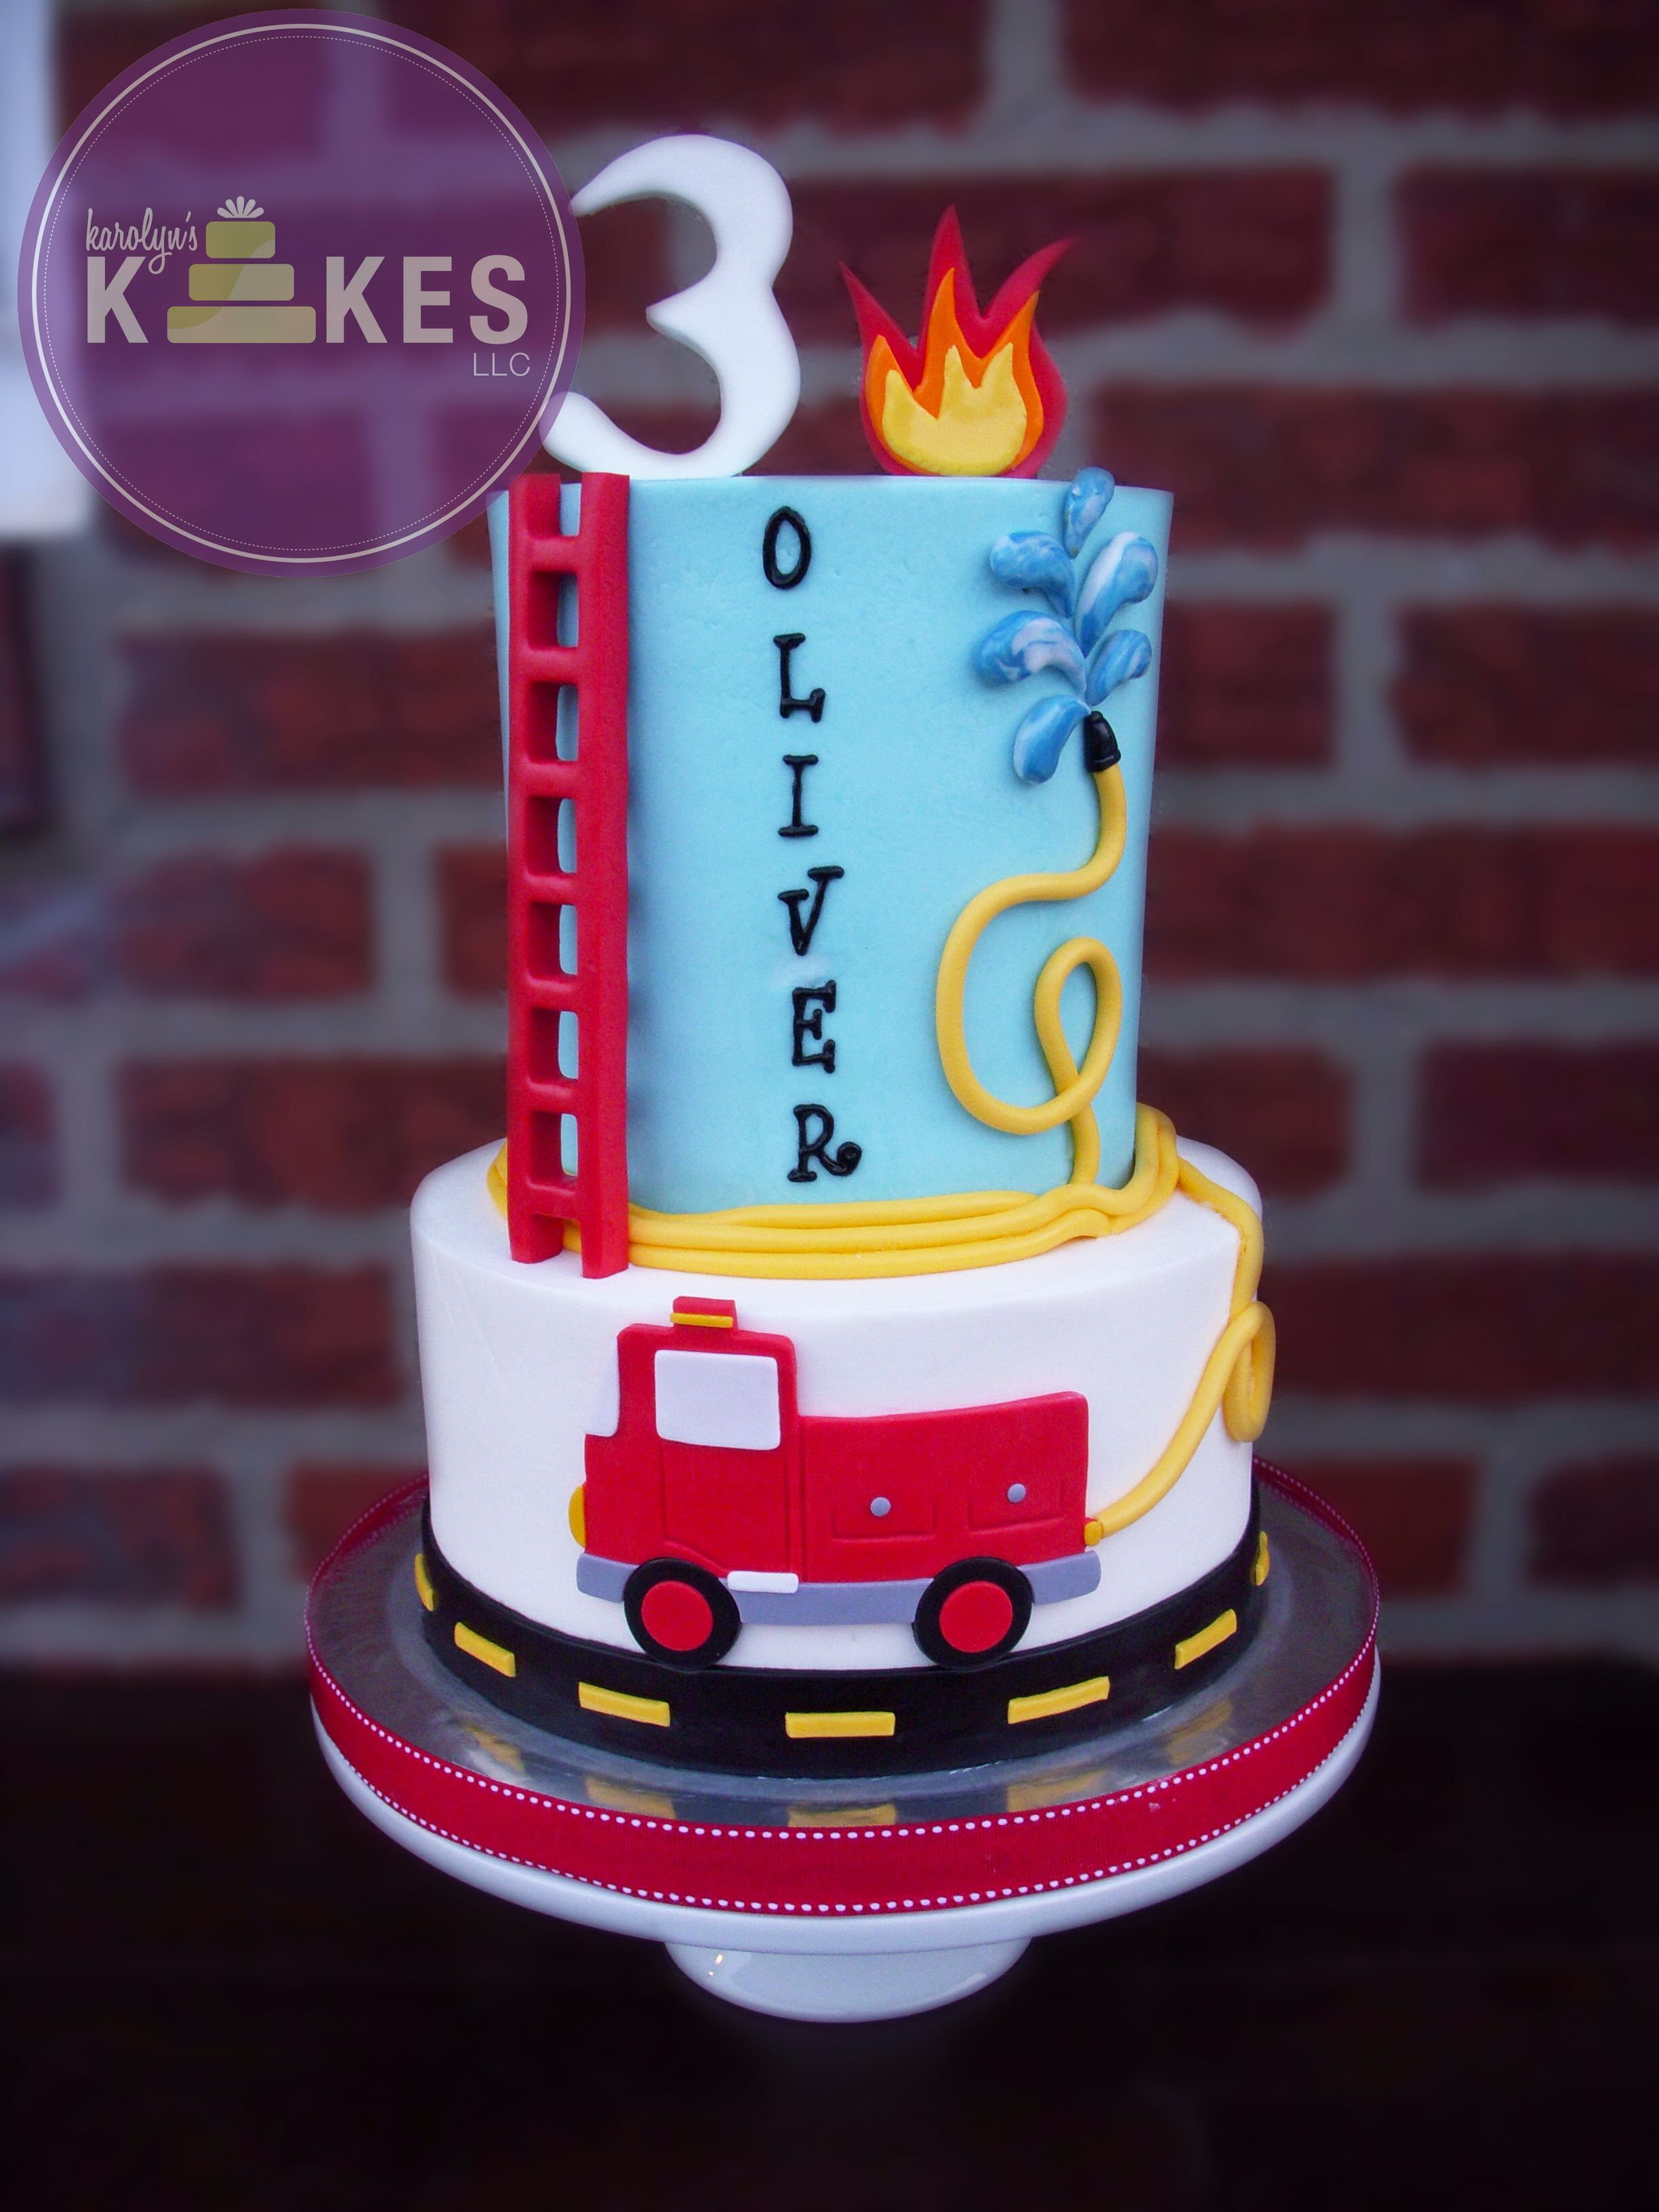 Cake ideas on pinterest pirate cakes marshmallow fondant and - Both Tiers Iced In Buttercream Marshmallow Fondant Flames Ladder Fire Truck Hose Water And Number Topper